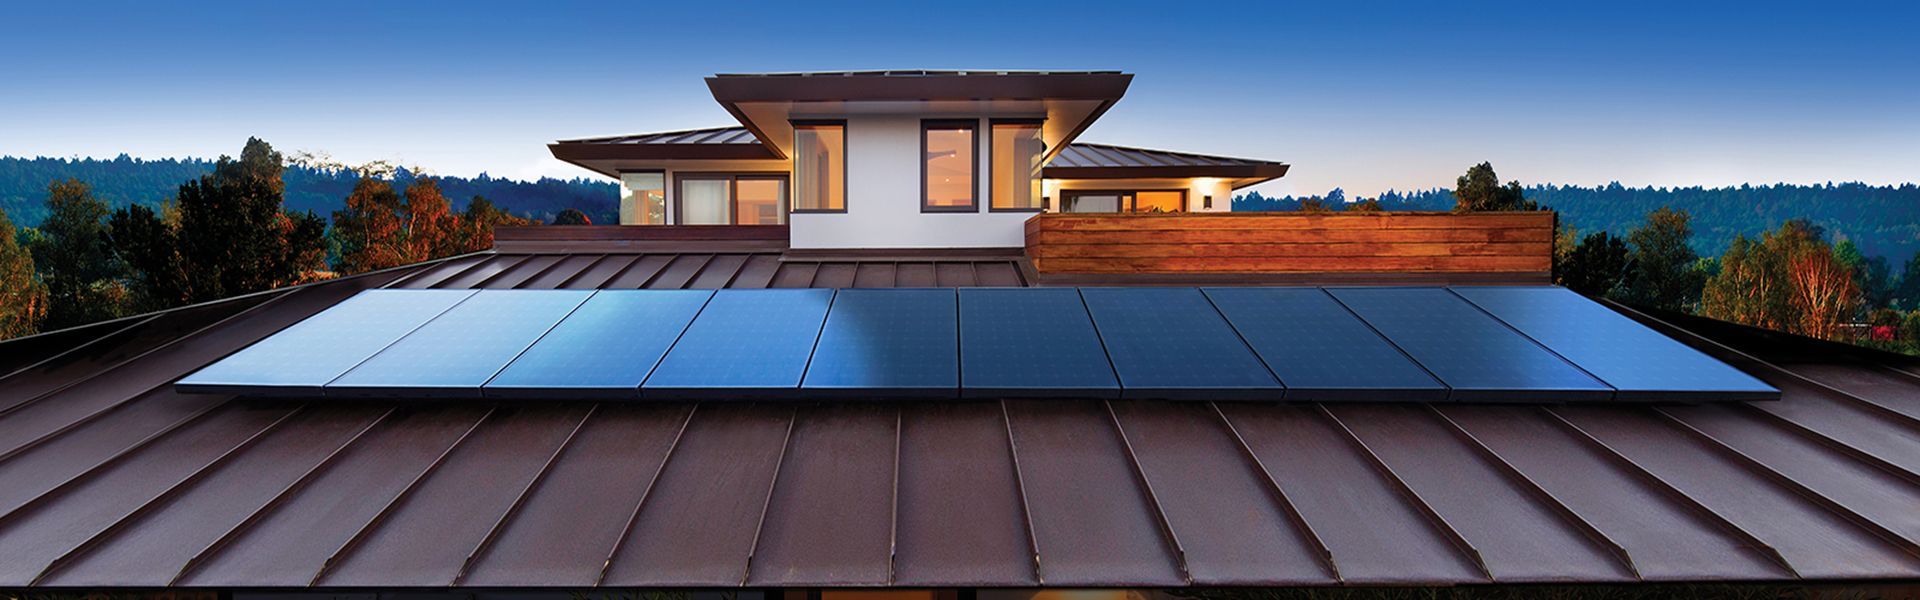 residential home with sunpower solar panels and blue sky